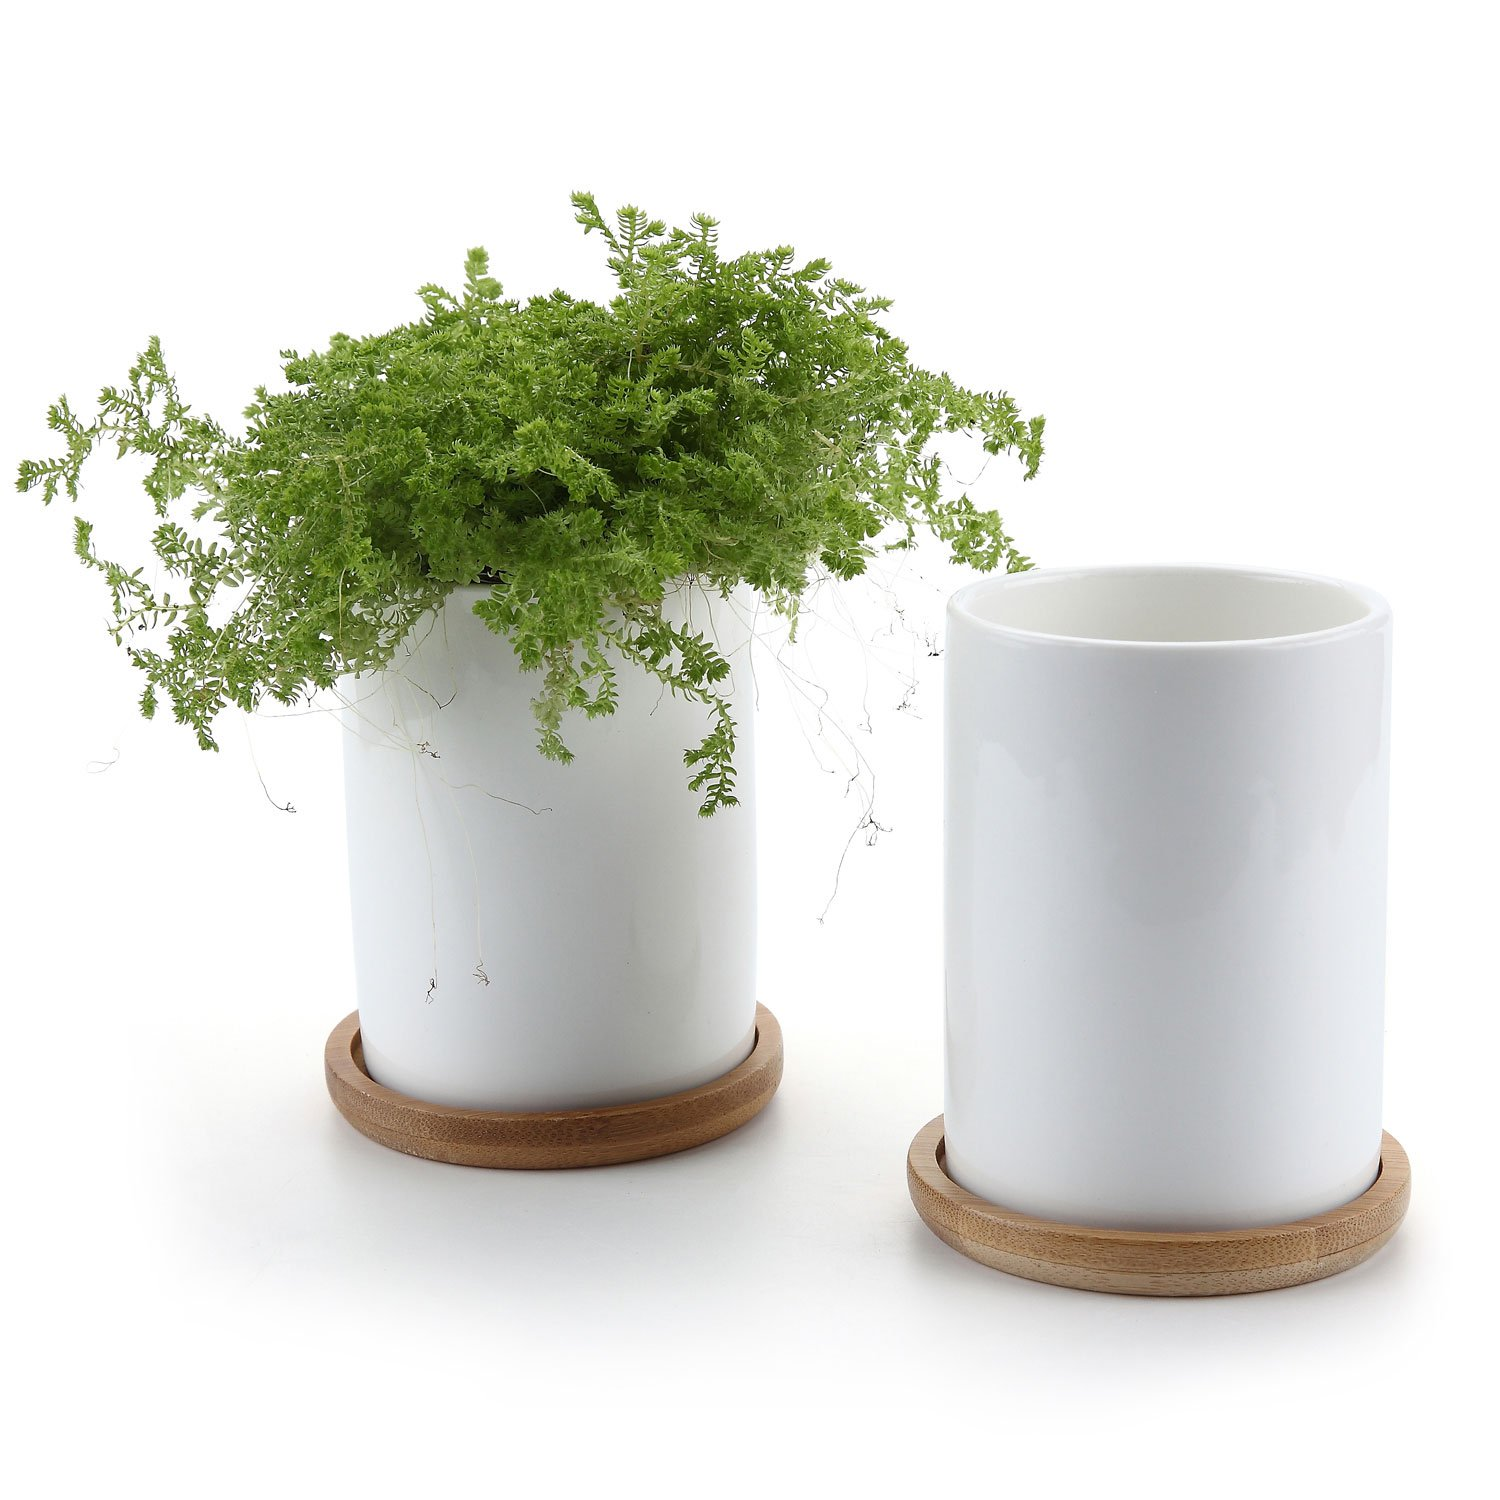 T4U 2.75 Inch Ceramic White Cylinder Sucuulent Plant Pot Cactus Plant Pot with Free Bamboo Tray Package 1 Pack of 2